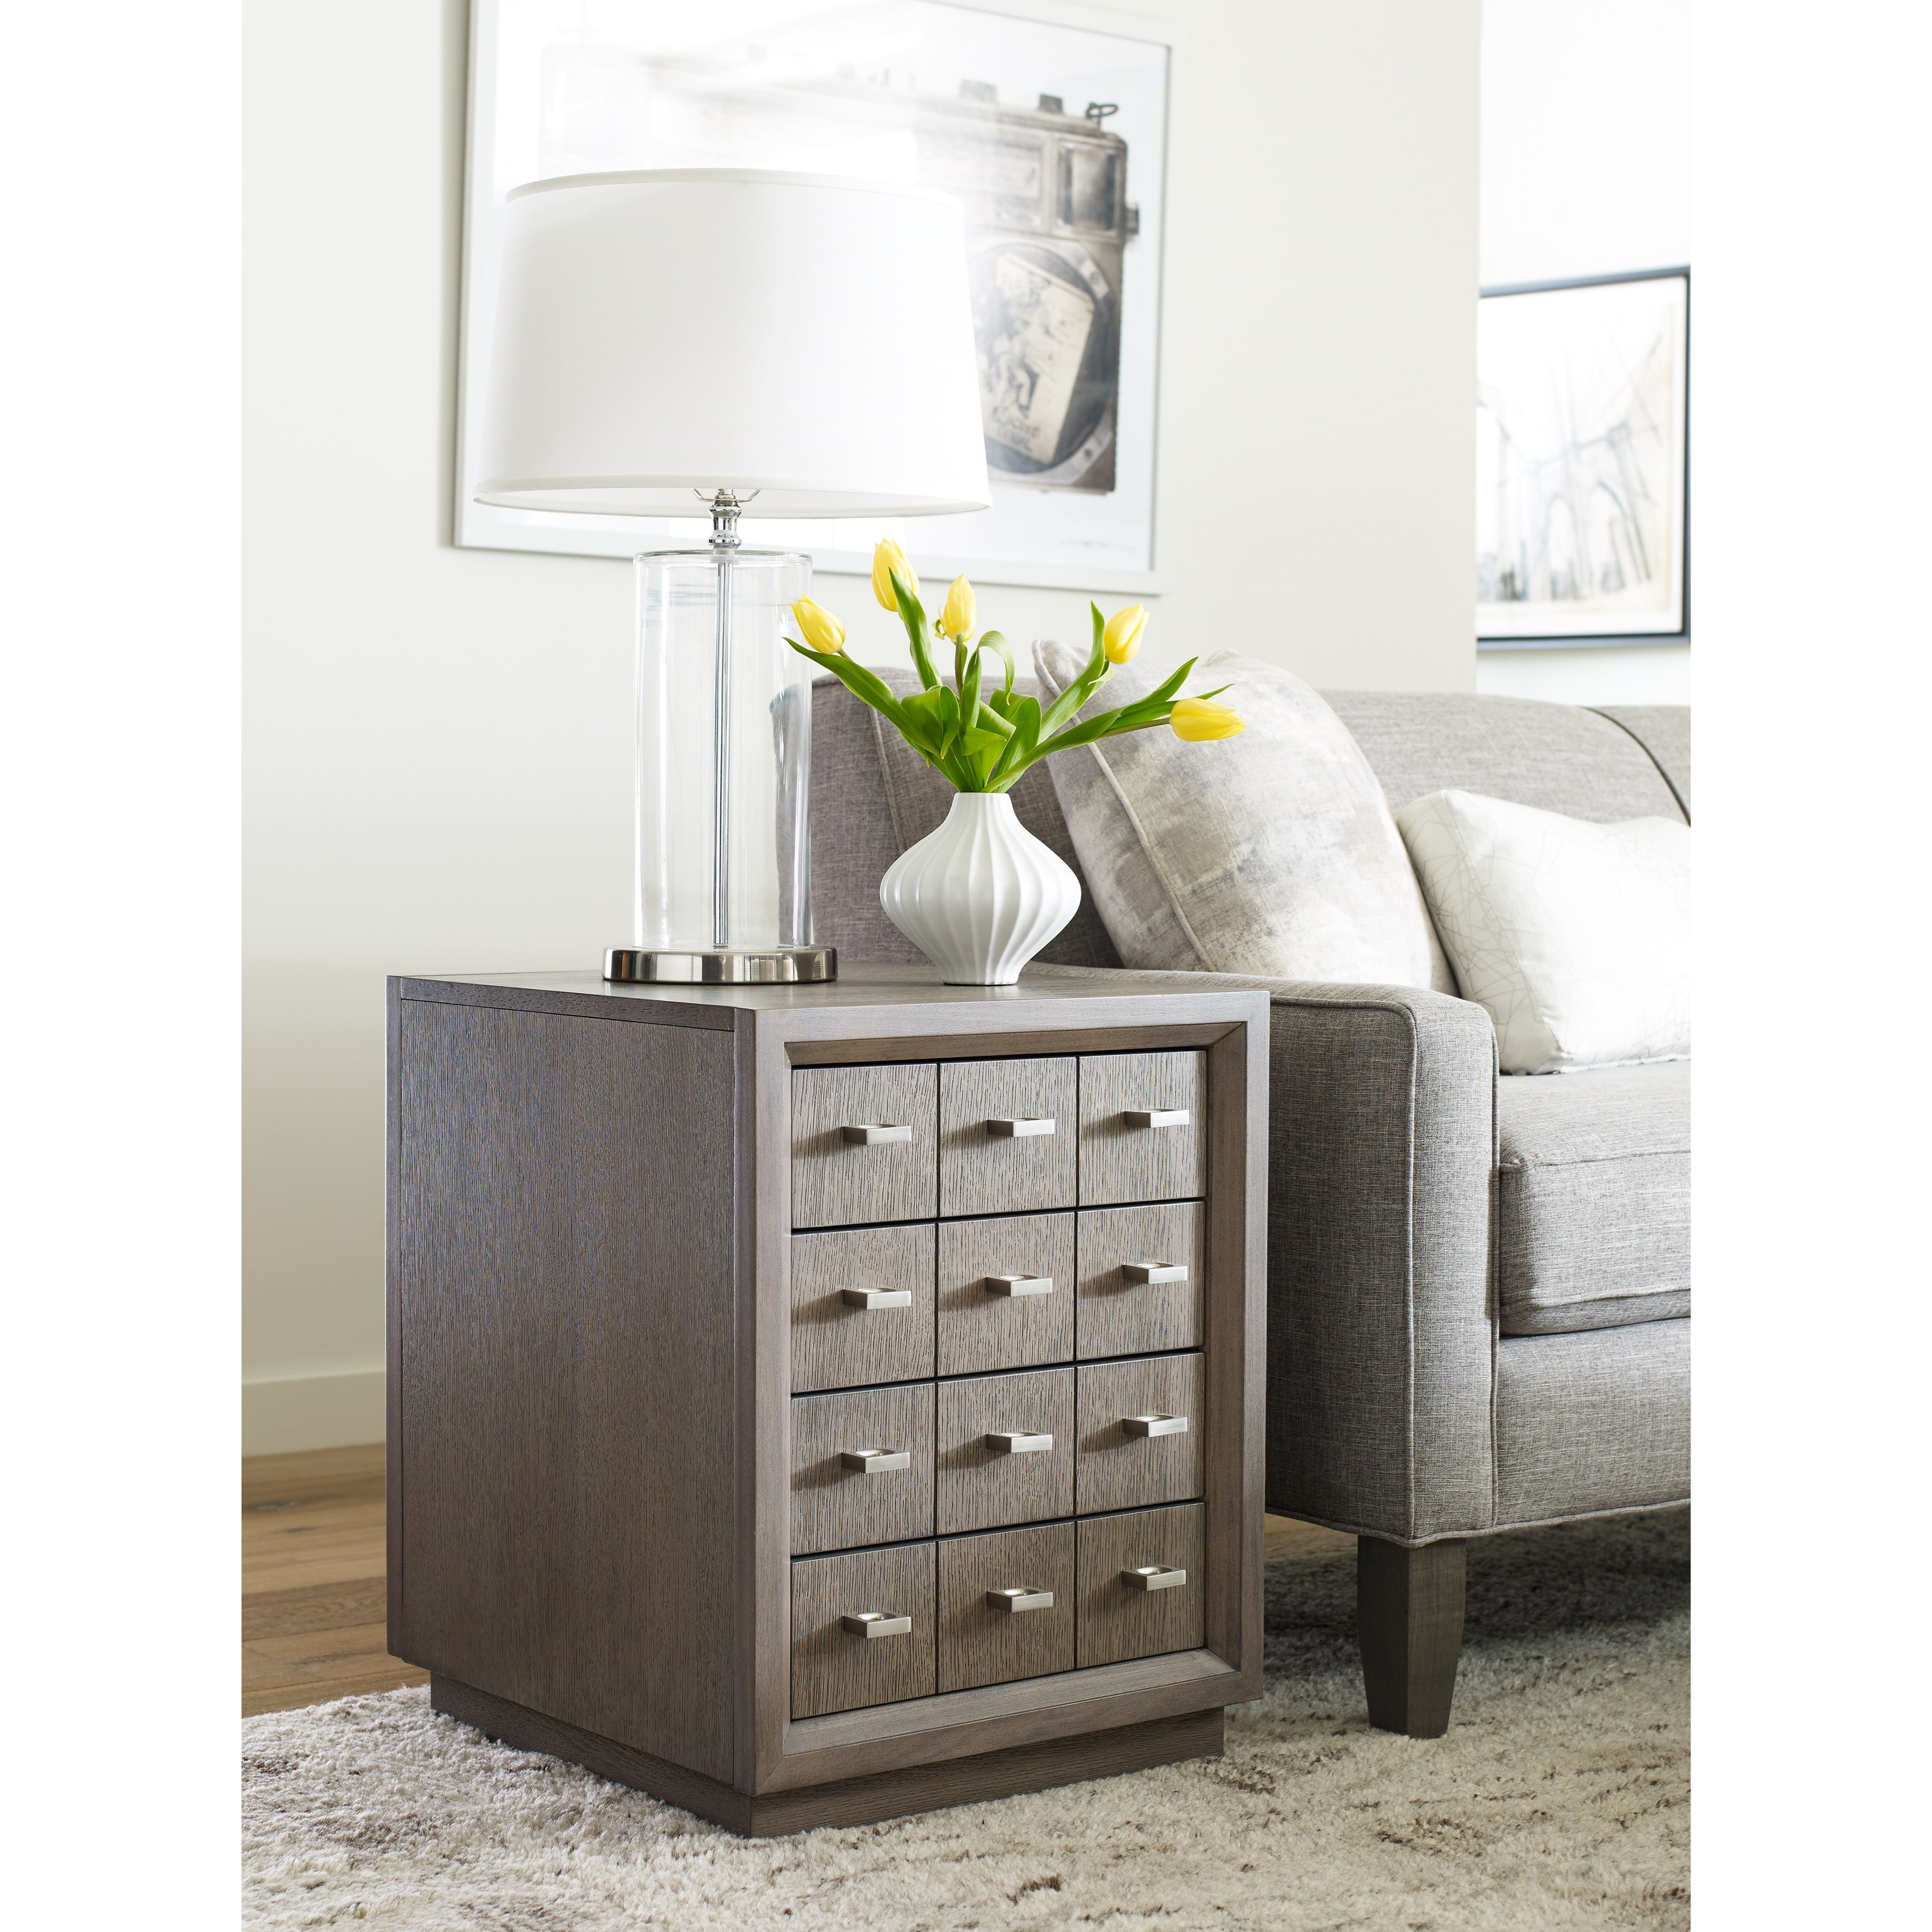 Rachael Ray Home By Legacy Classic High Line Side Table With 4 Drawers Miskelly Furniture